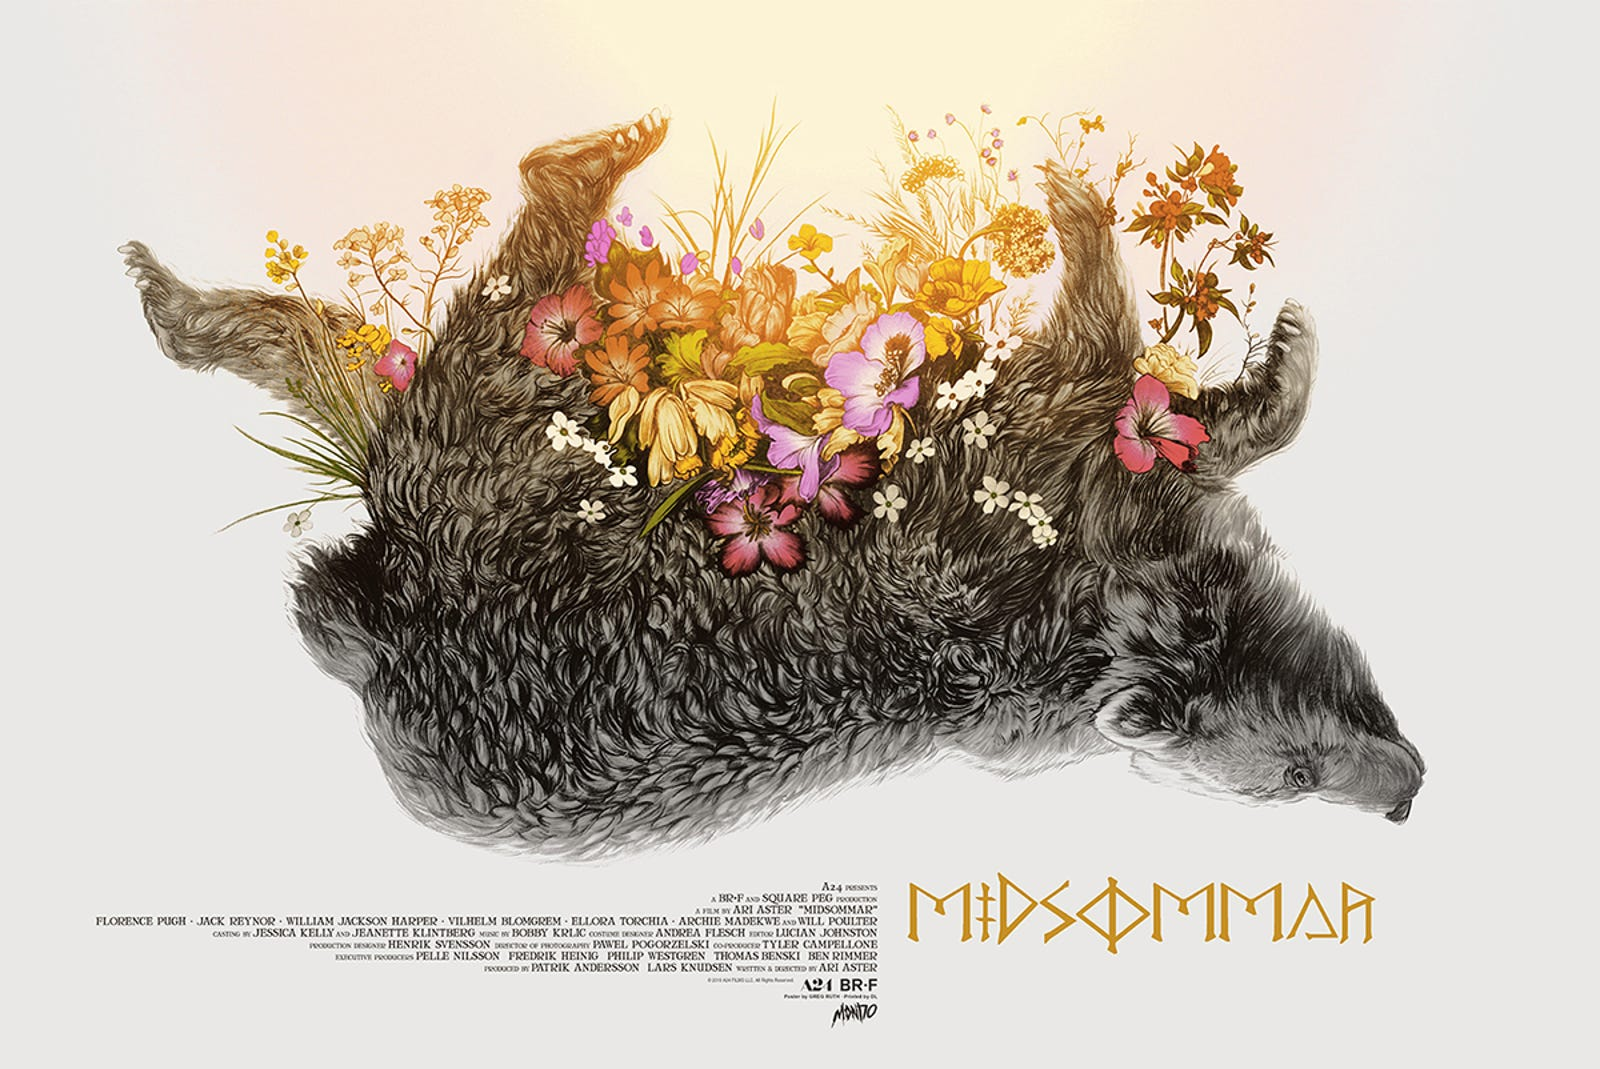 """MIDSOMMAR by Greg Ruth 36""""x24"""" Screenprinted Poster, Edition of 275 DL Screenprinting $50"""